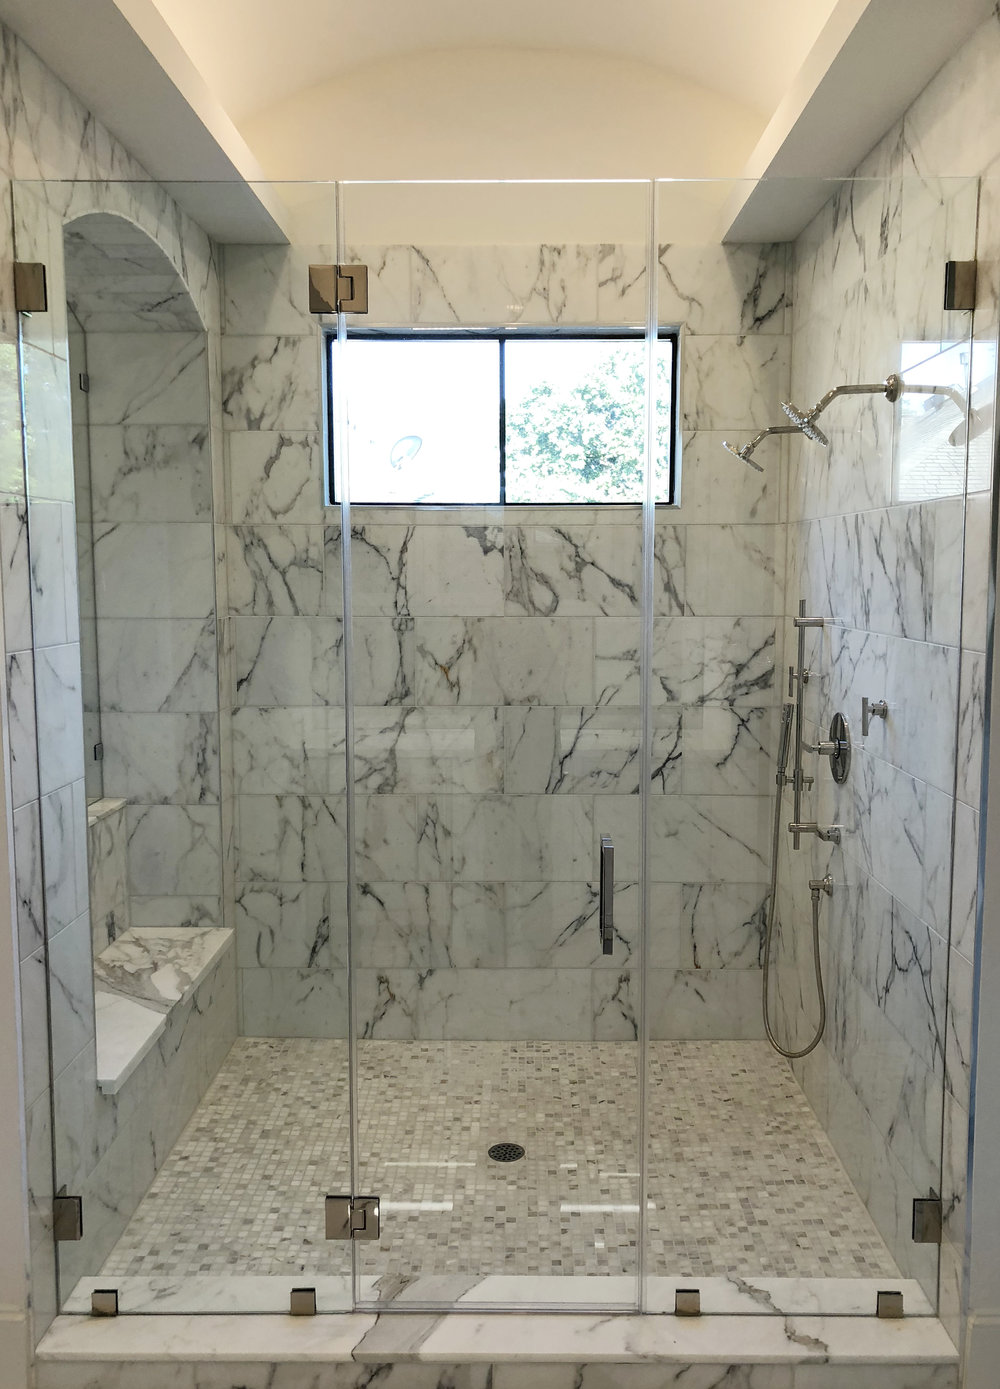 Luxurious marble shower with polished nickel plumbing designed by Berlin Interior Designer Jamie House and built by CM Batts Developers. Jamie House Design interior design and decoration.